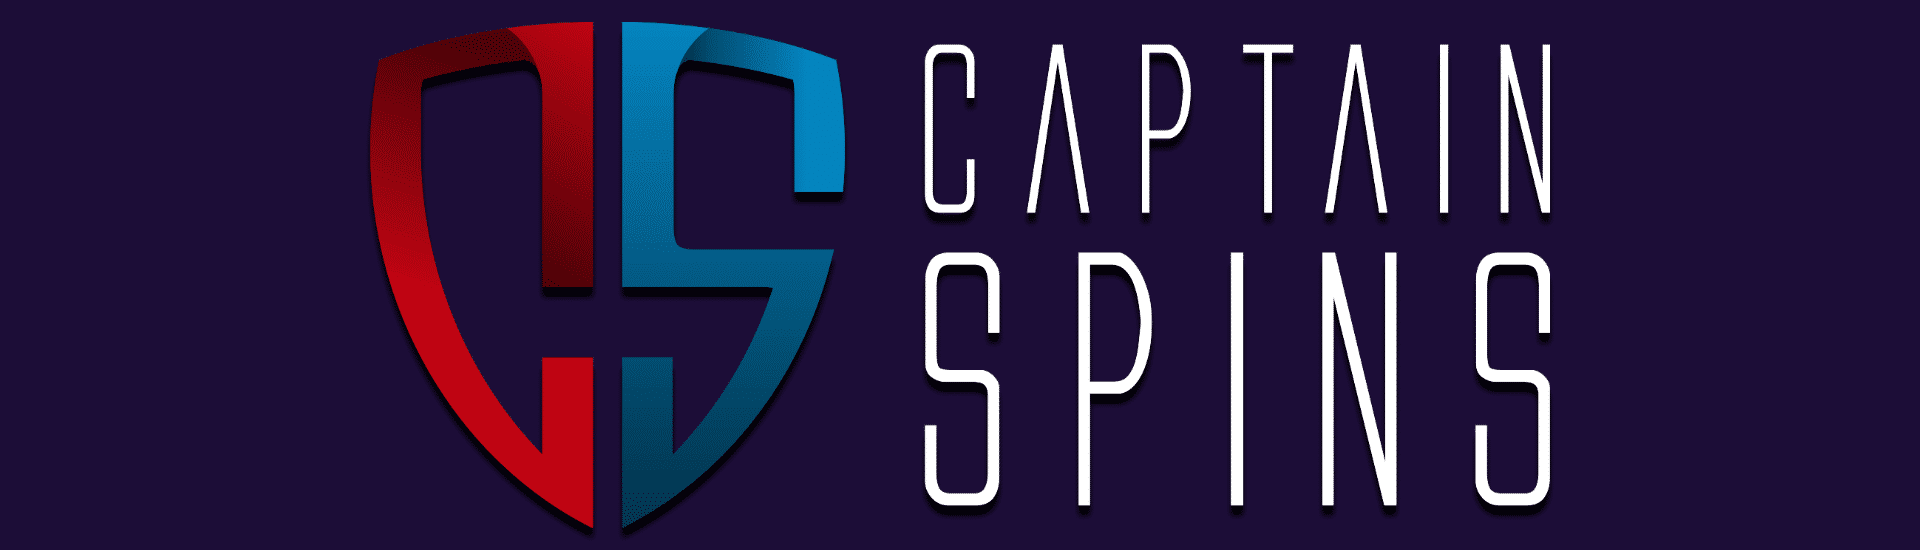 Captain Spins Featured Image